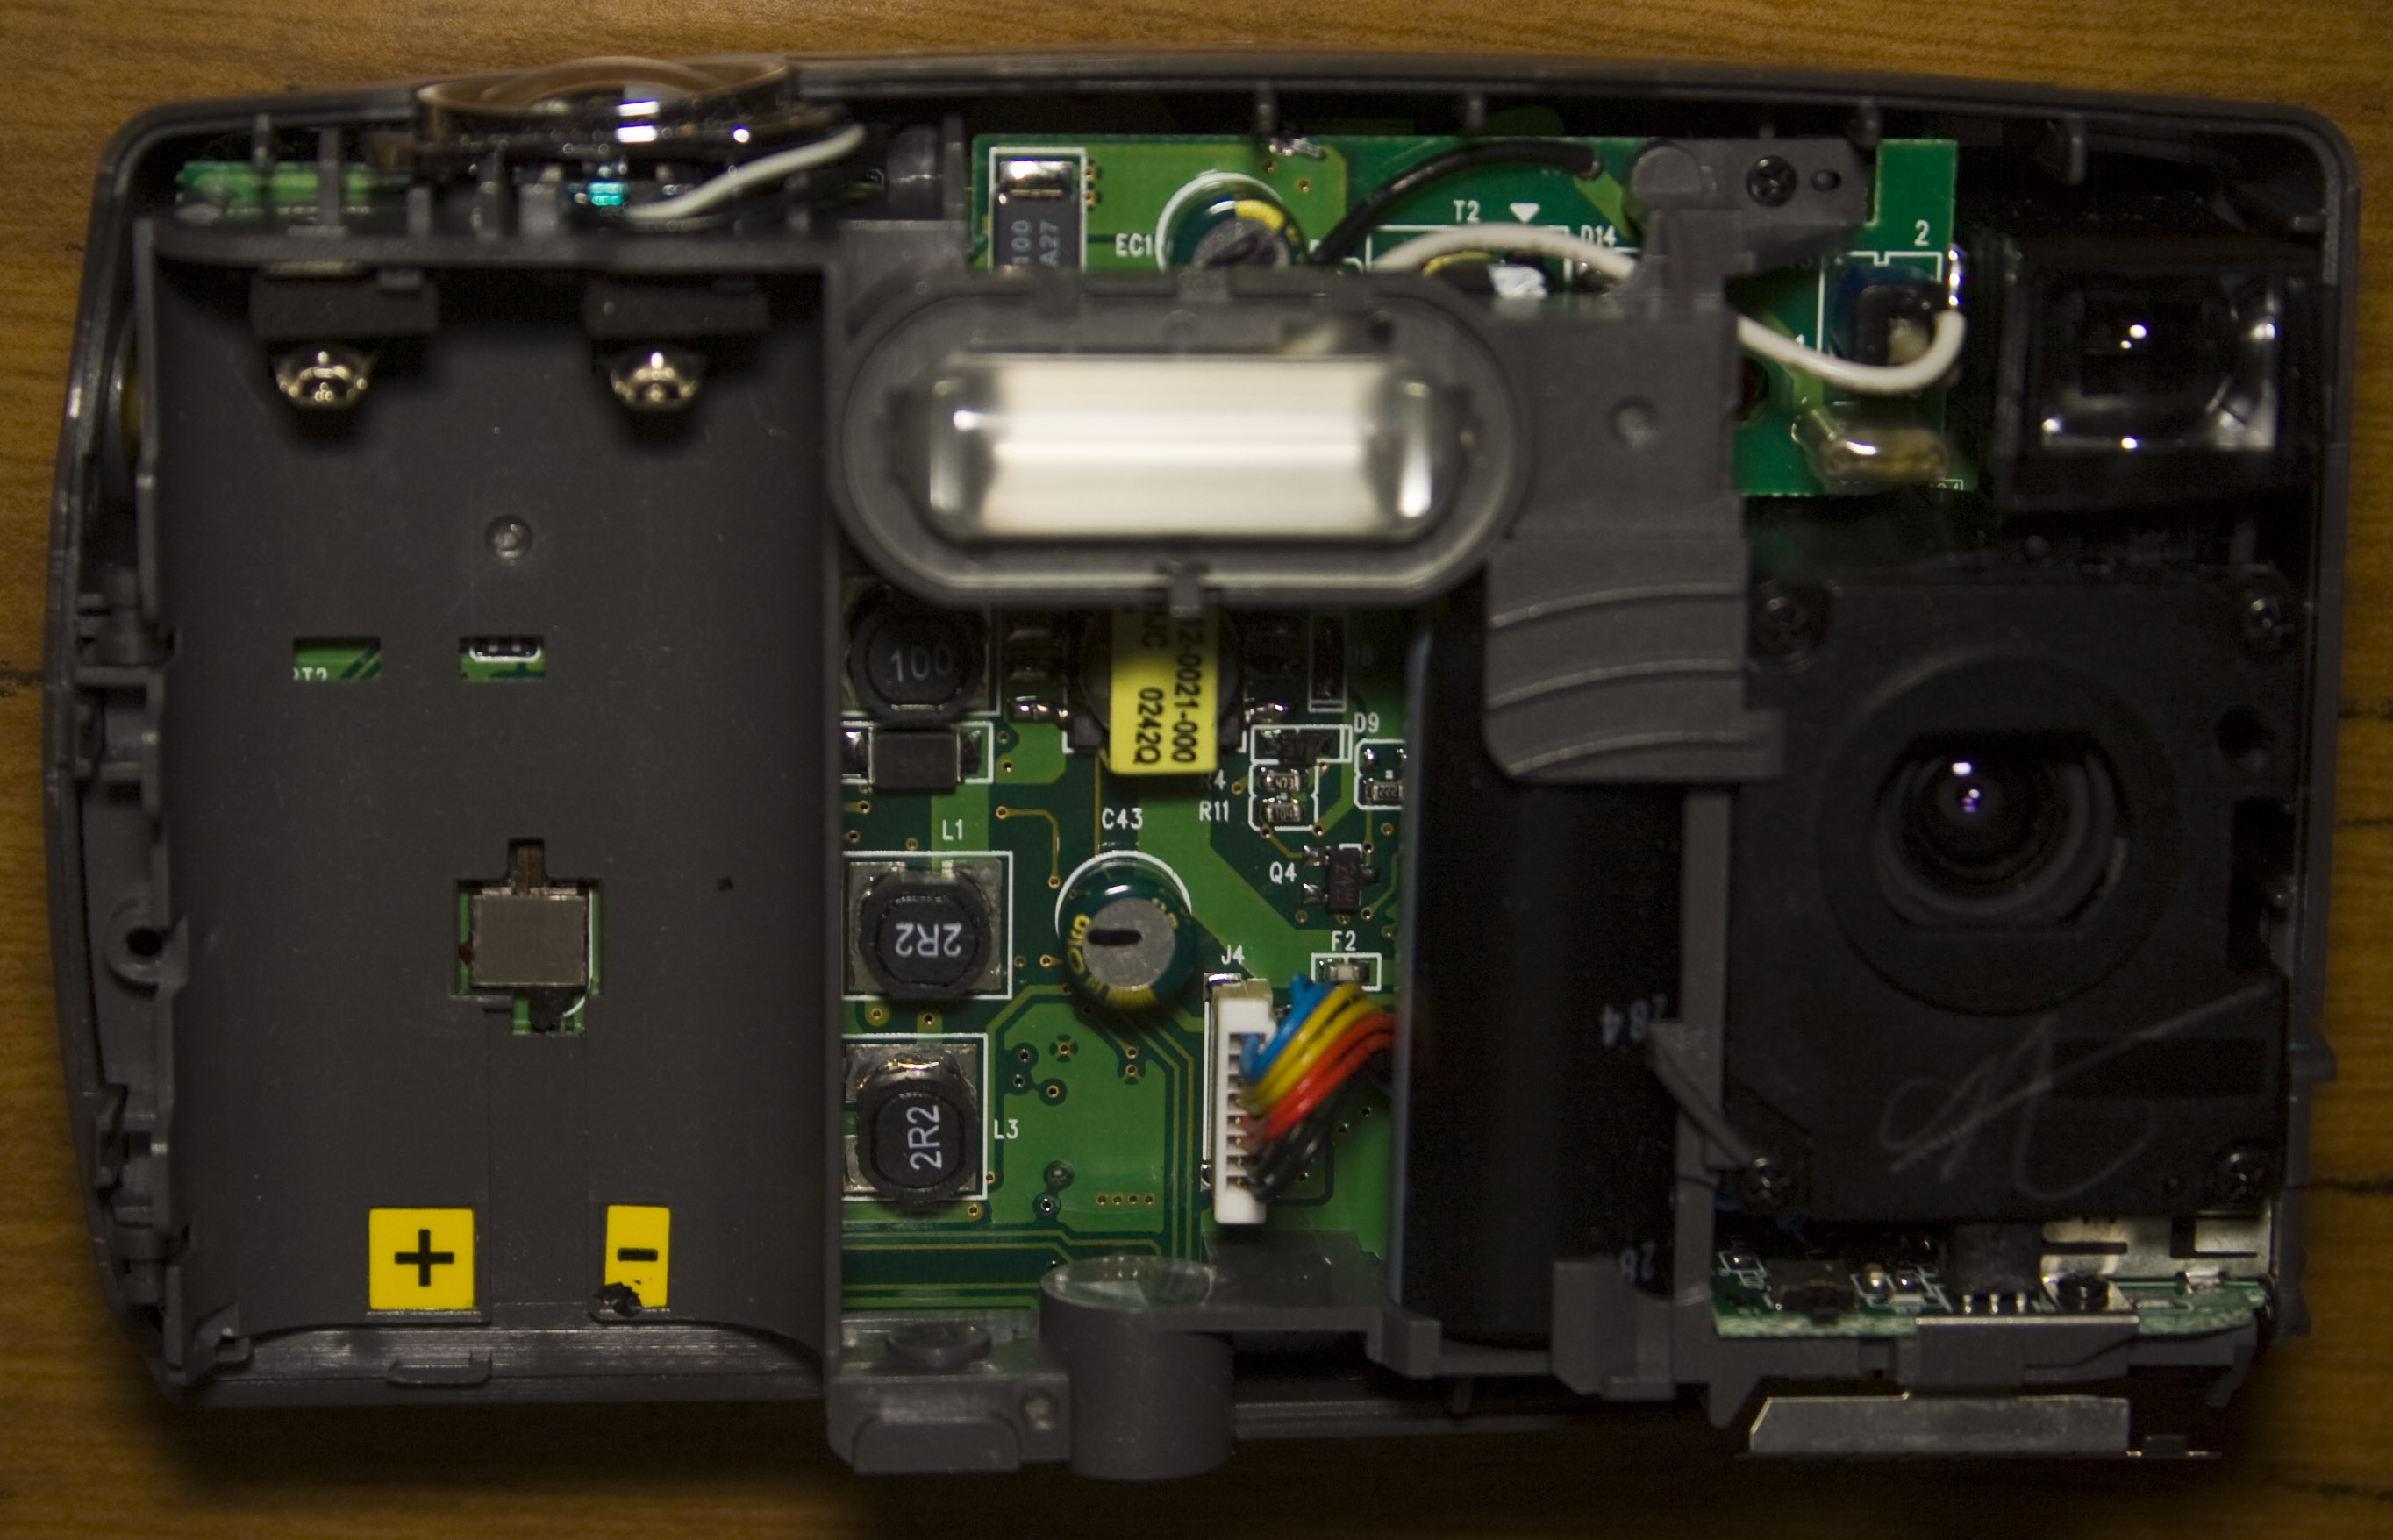 Inside The Kodak Easyshare Cx4200 2mp Digital Camera Insidegadgets Flash Circuit Further Disposable Weve Got Top Side Which Has Aa Battery And Bottom A Casio Lcd Its Two Board Construction With Small